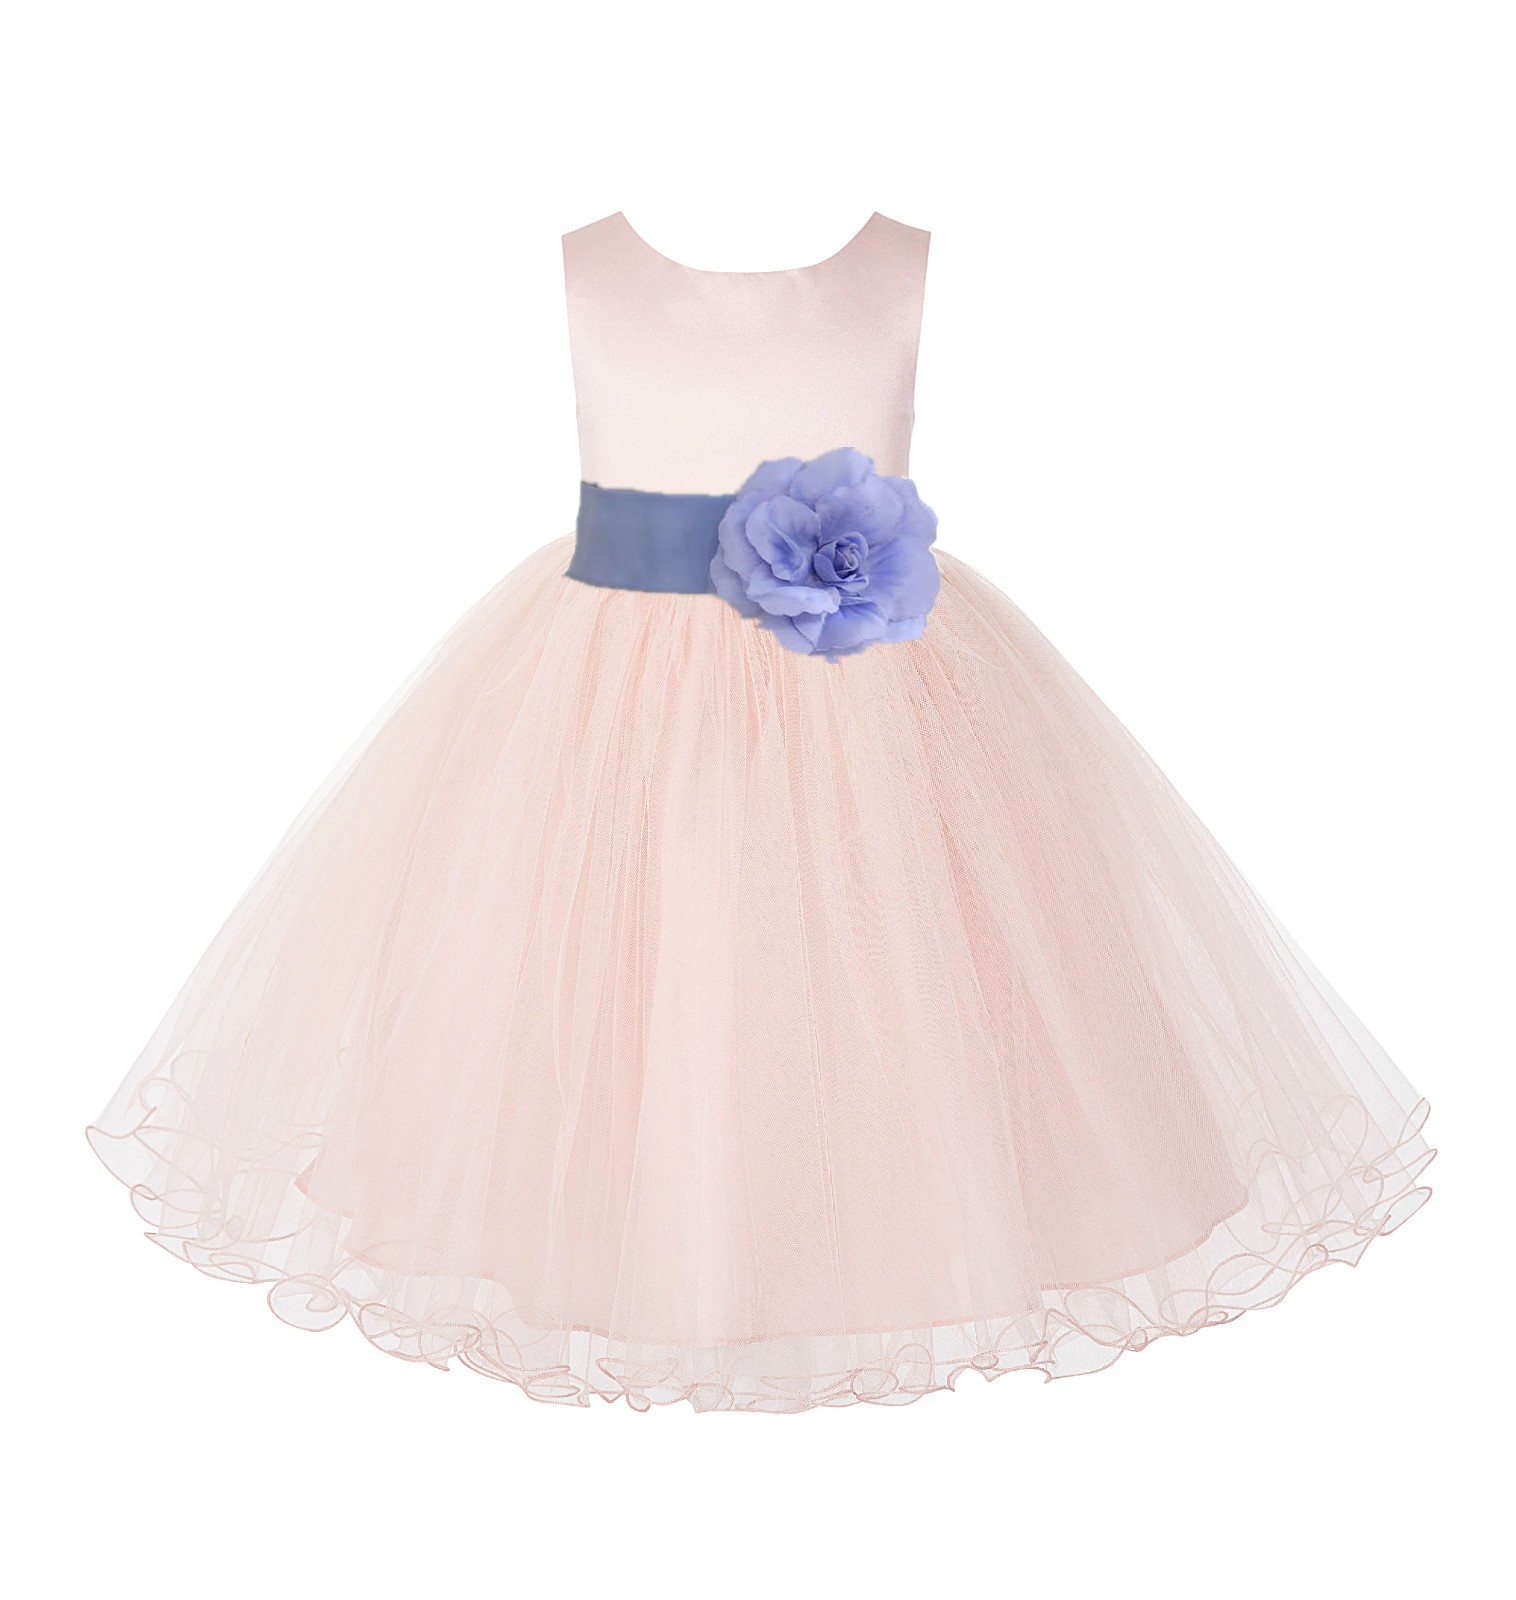 Blush Pink / Bluebird Tulle Rattail Edge Flower Girl Dress Pageant Recital 829S